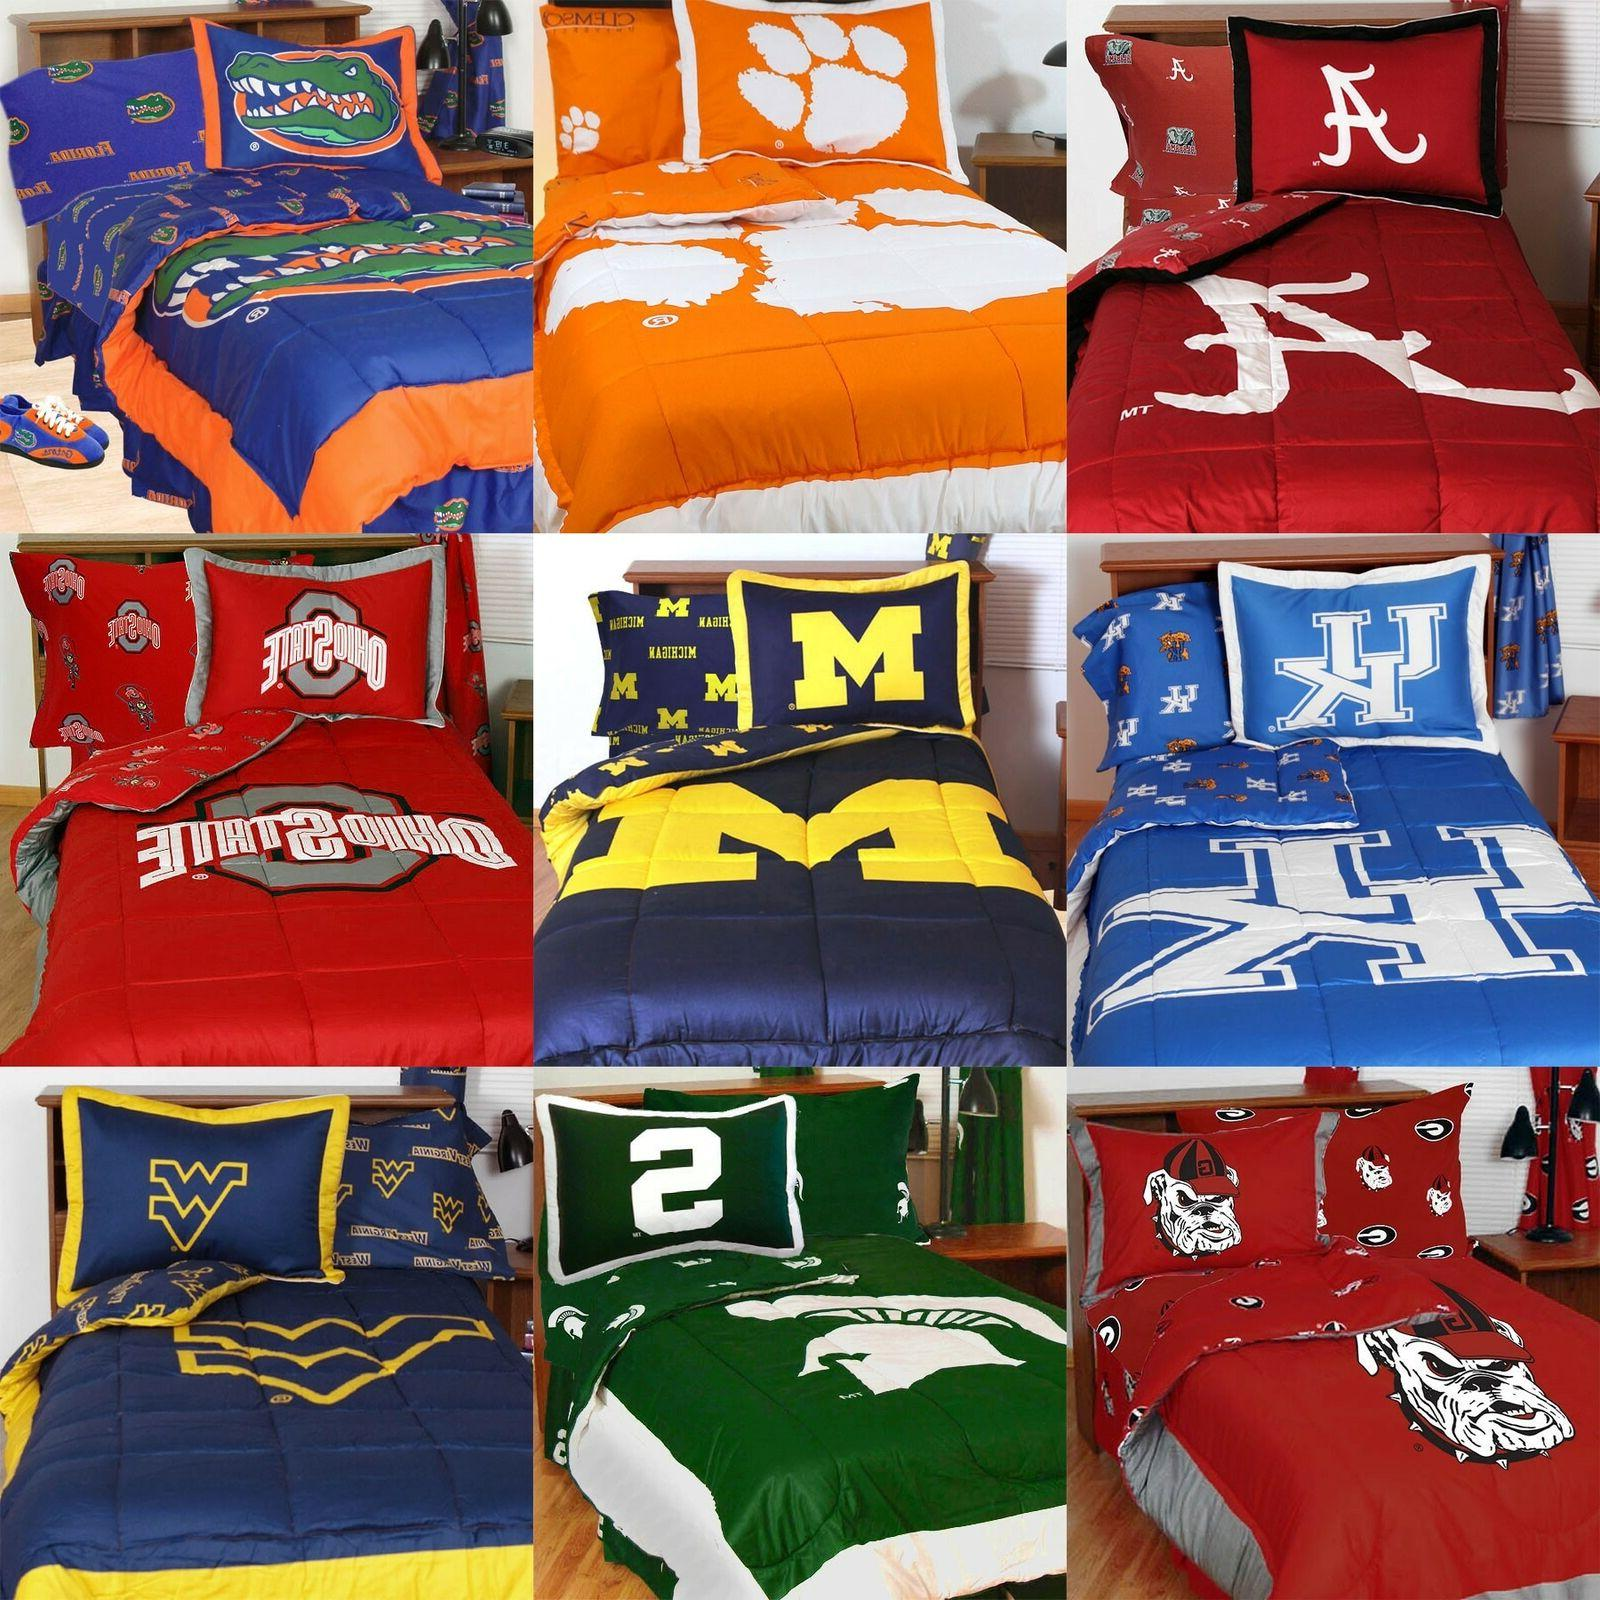 NCAA COLLEGE BEDDING SET - Bed in a Bag Comforter Sheets Tea